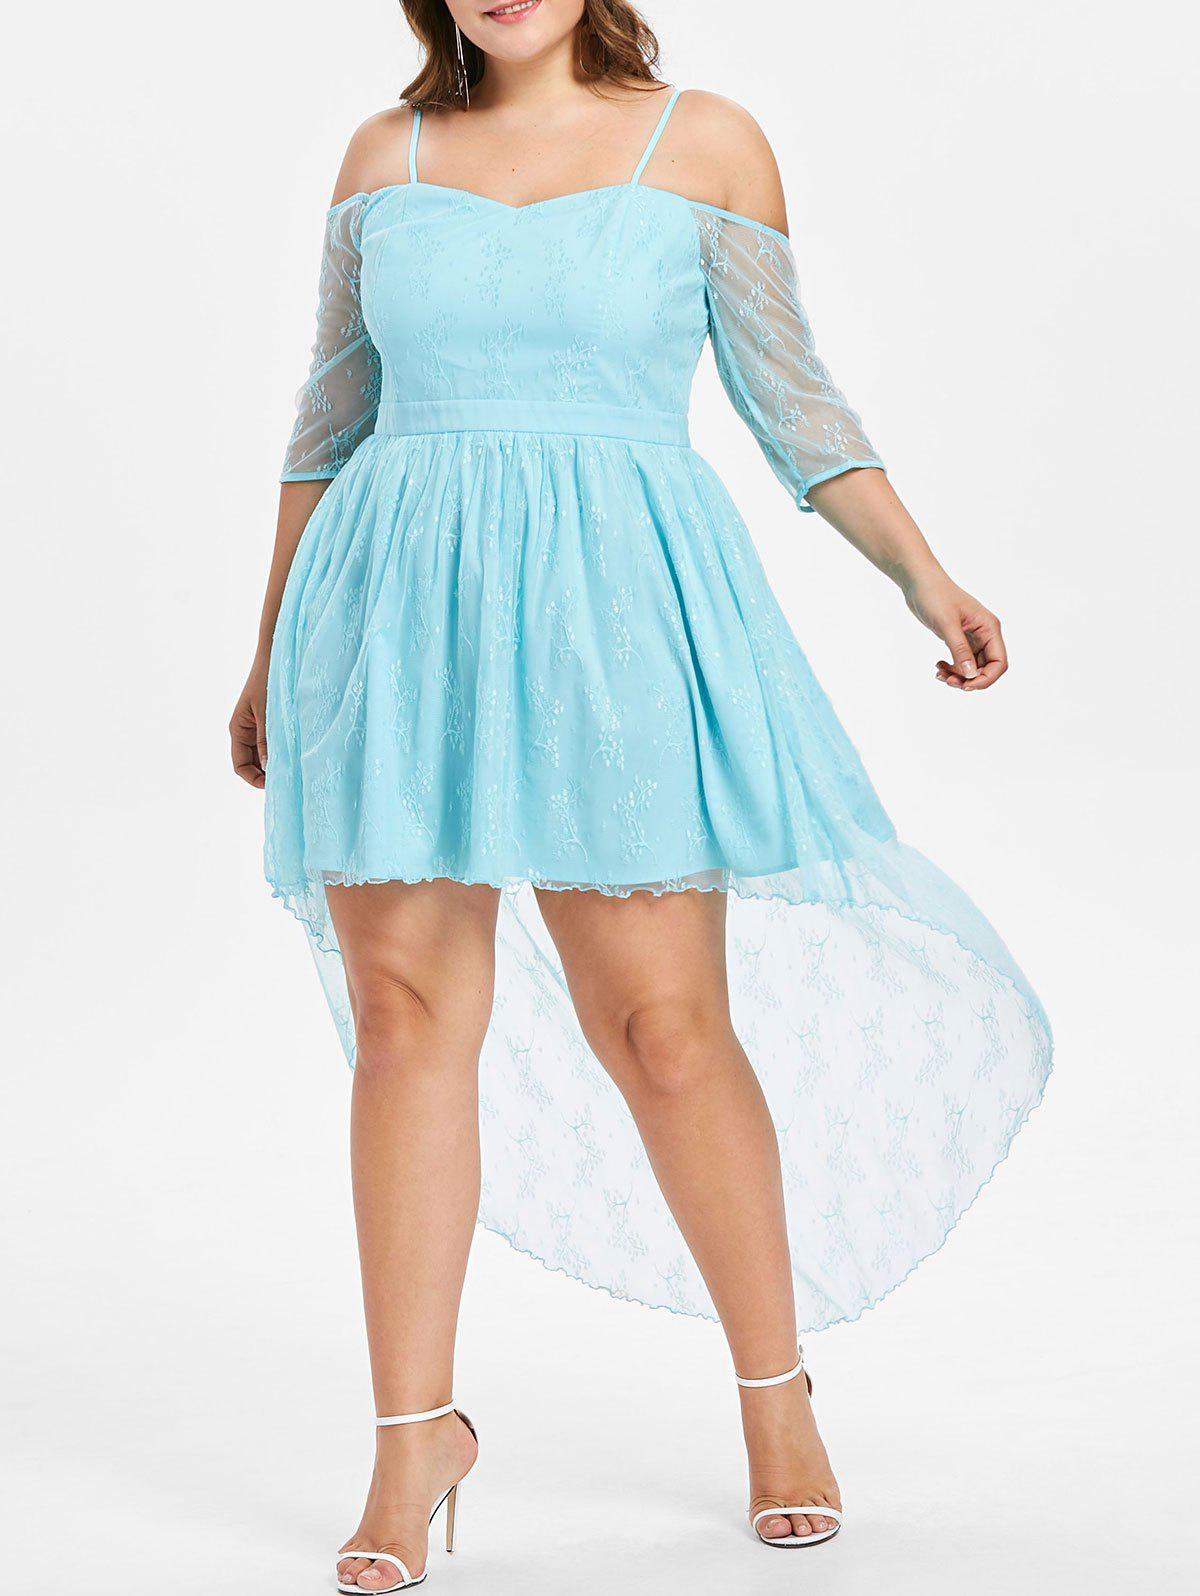 32% OFF] Plus Size Cold Shoulder Lace High Low Dress | Rosegal